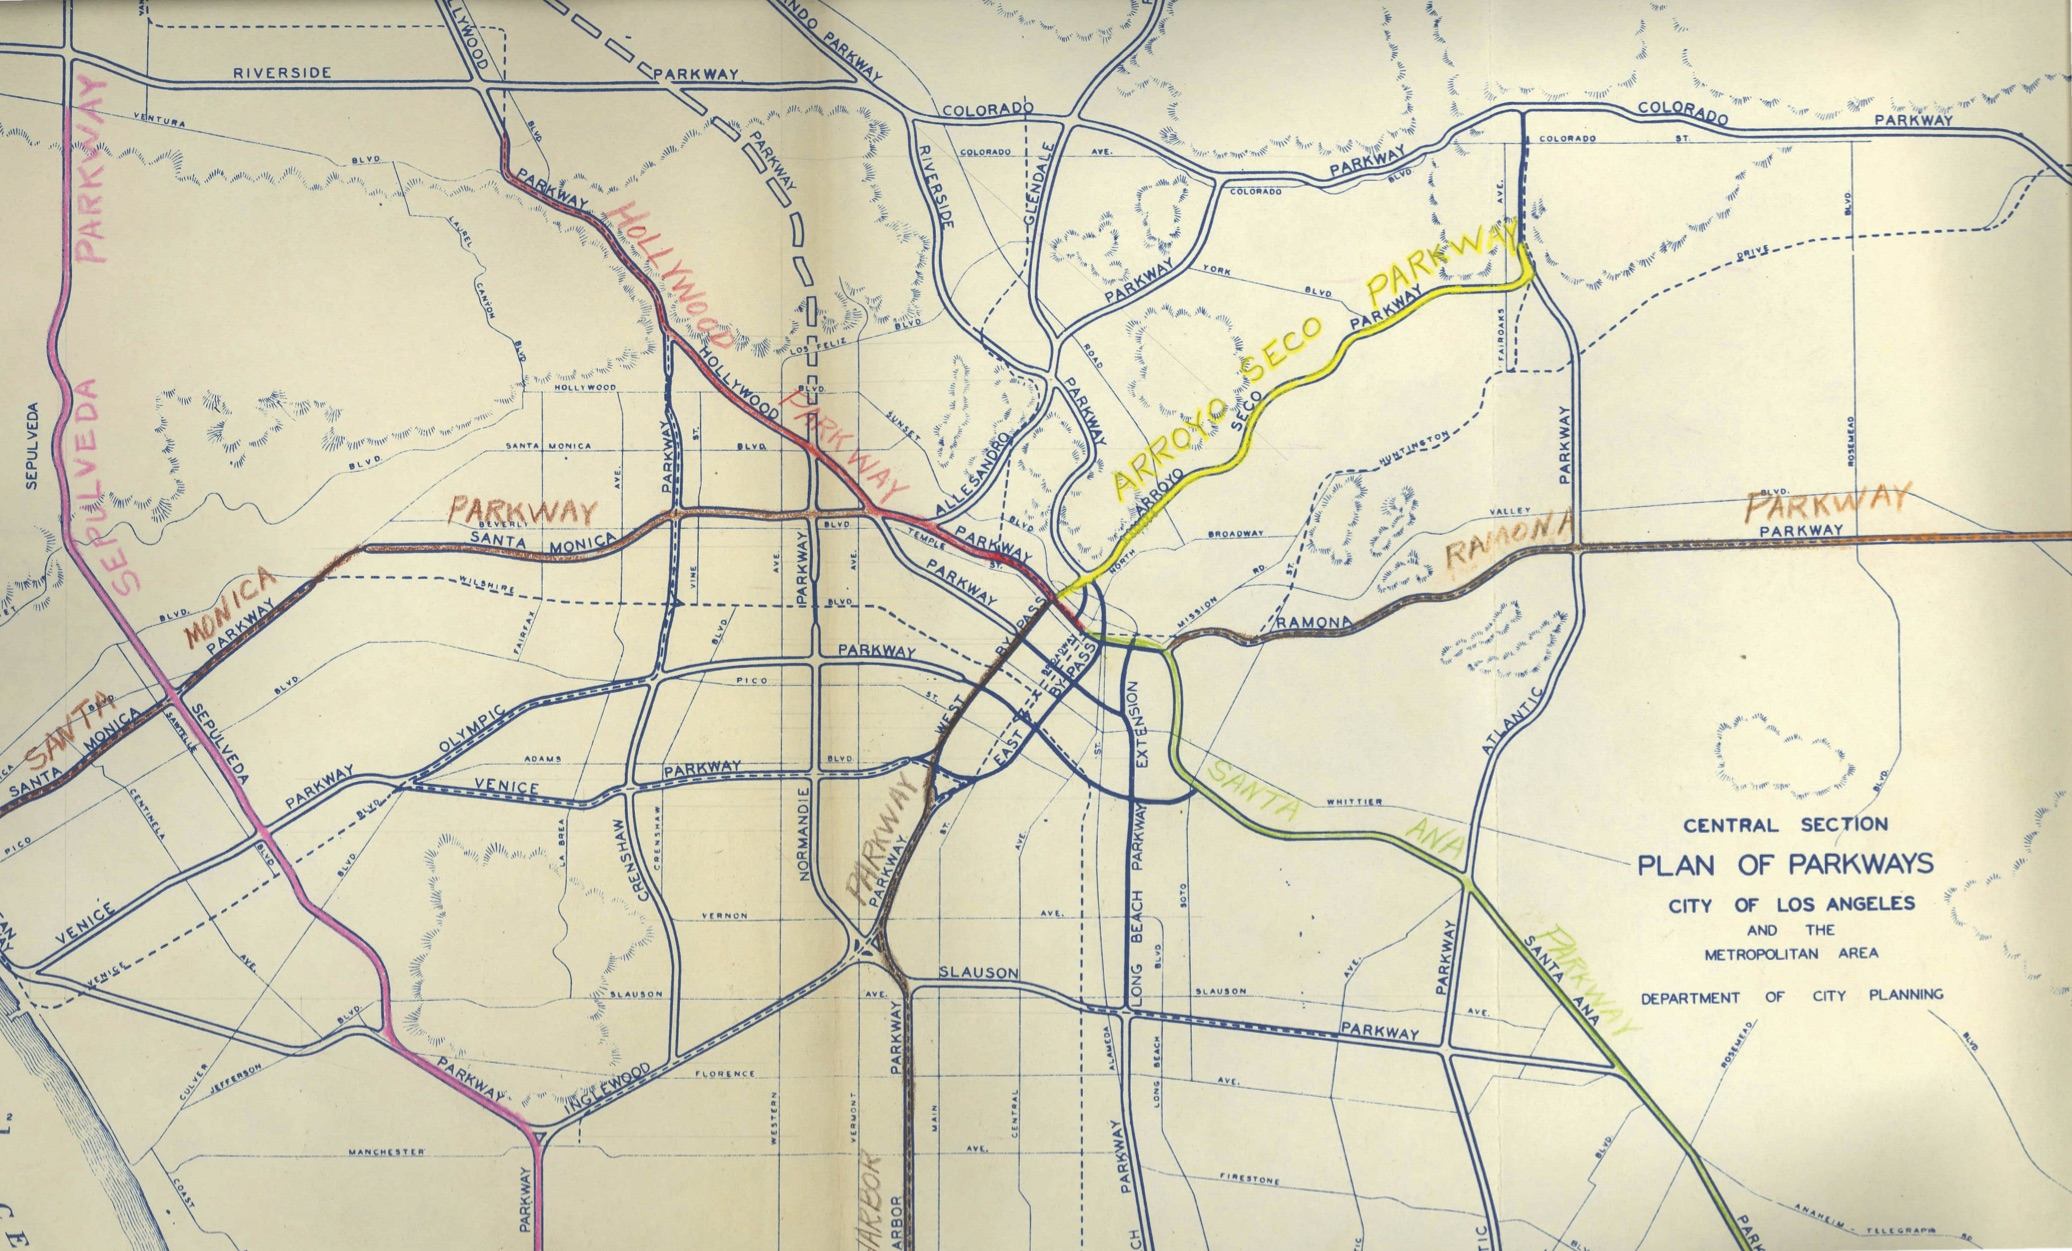 An early master plan of Los Angeles freeways from a 1943 report, Freeways for the Region, courtesy of the Metro Transportation Library and Archive